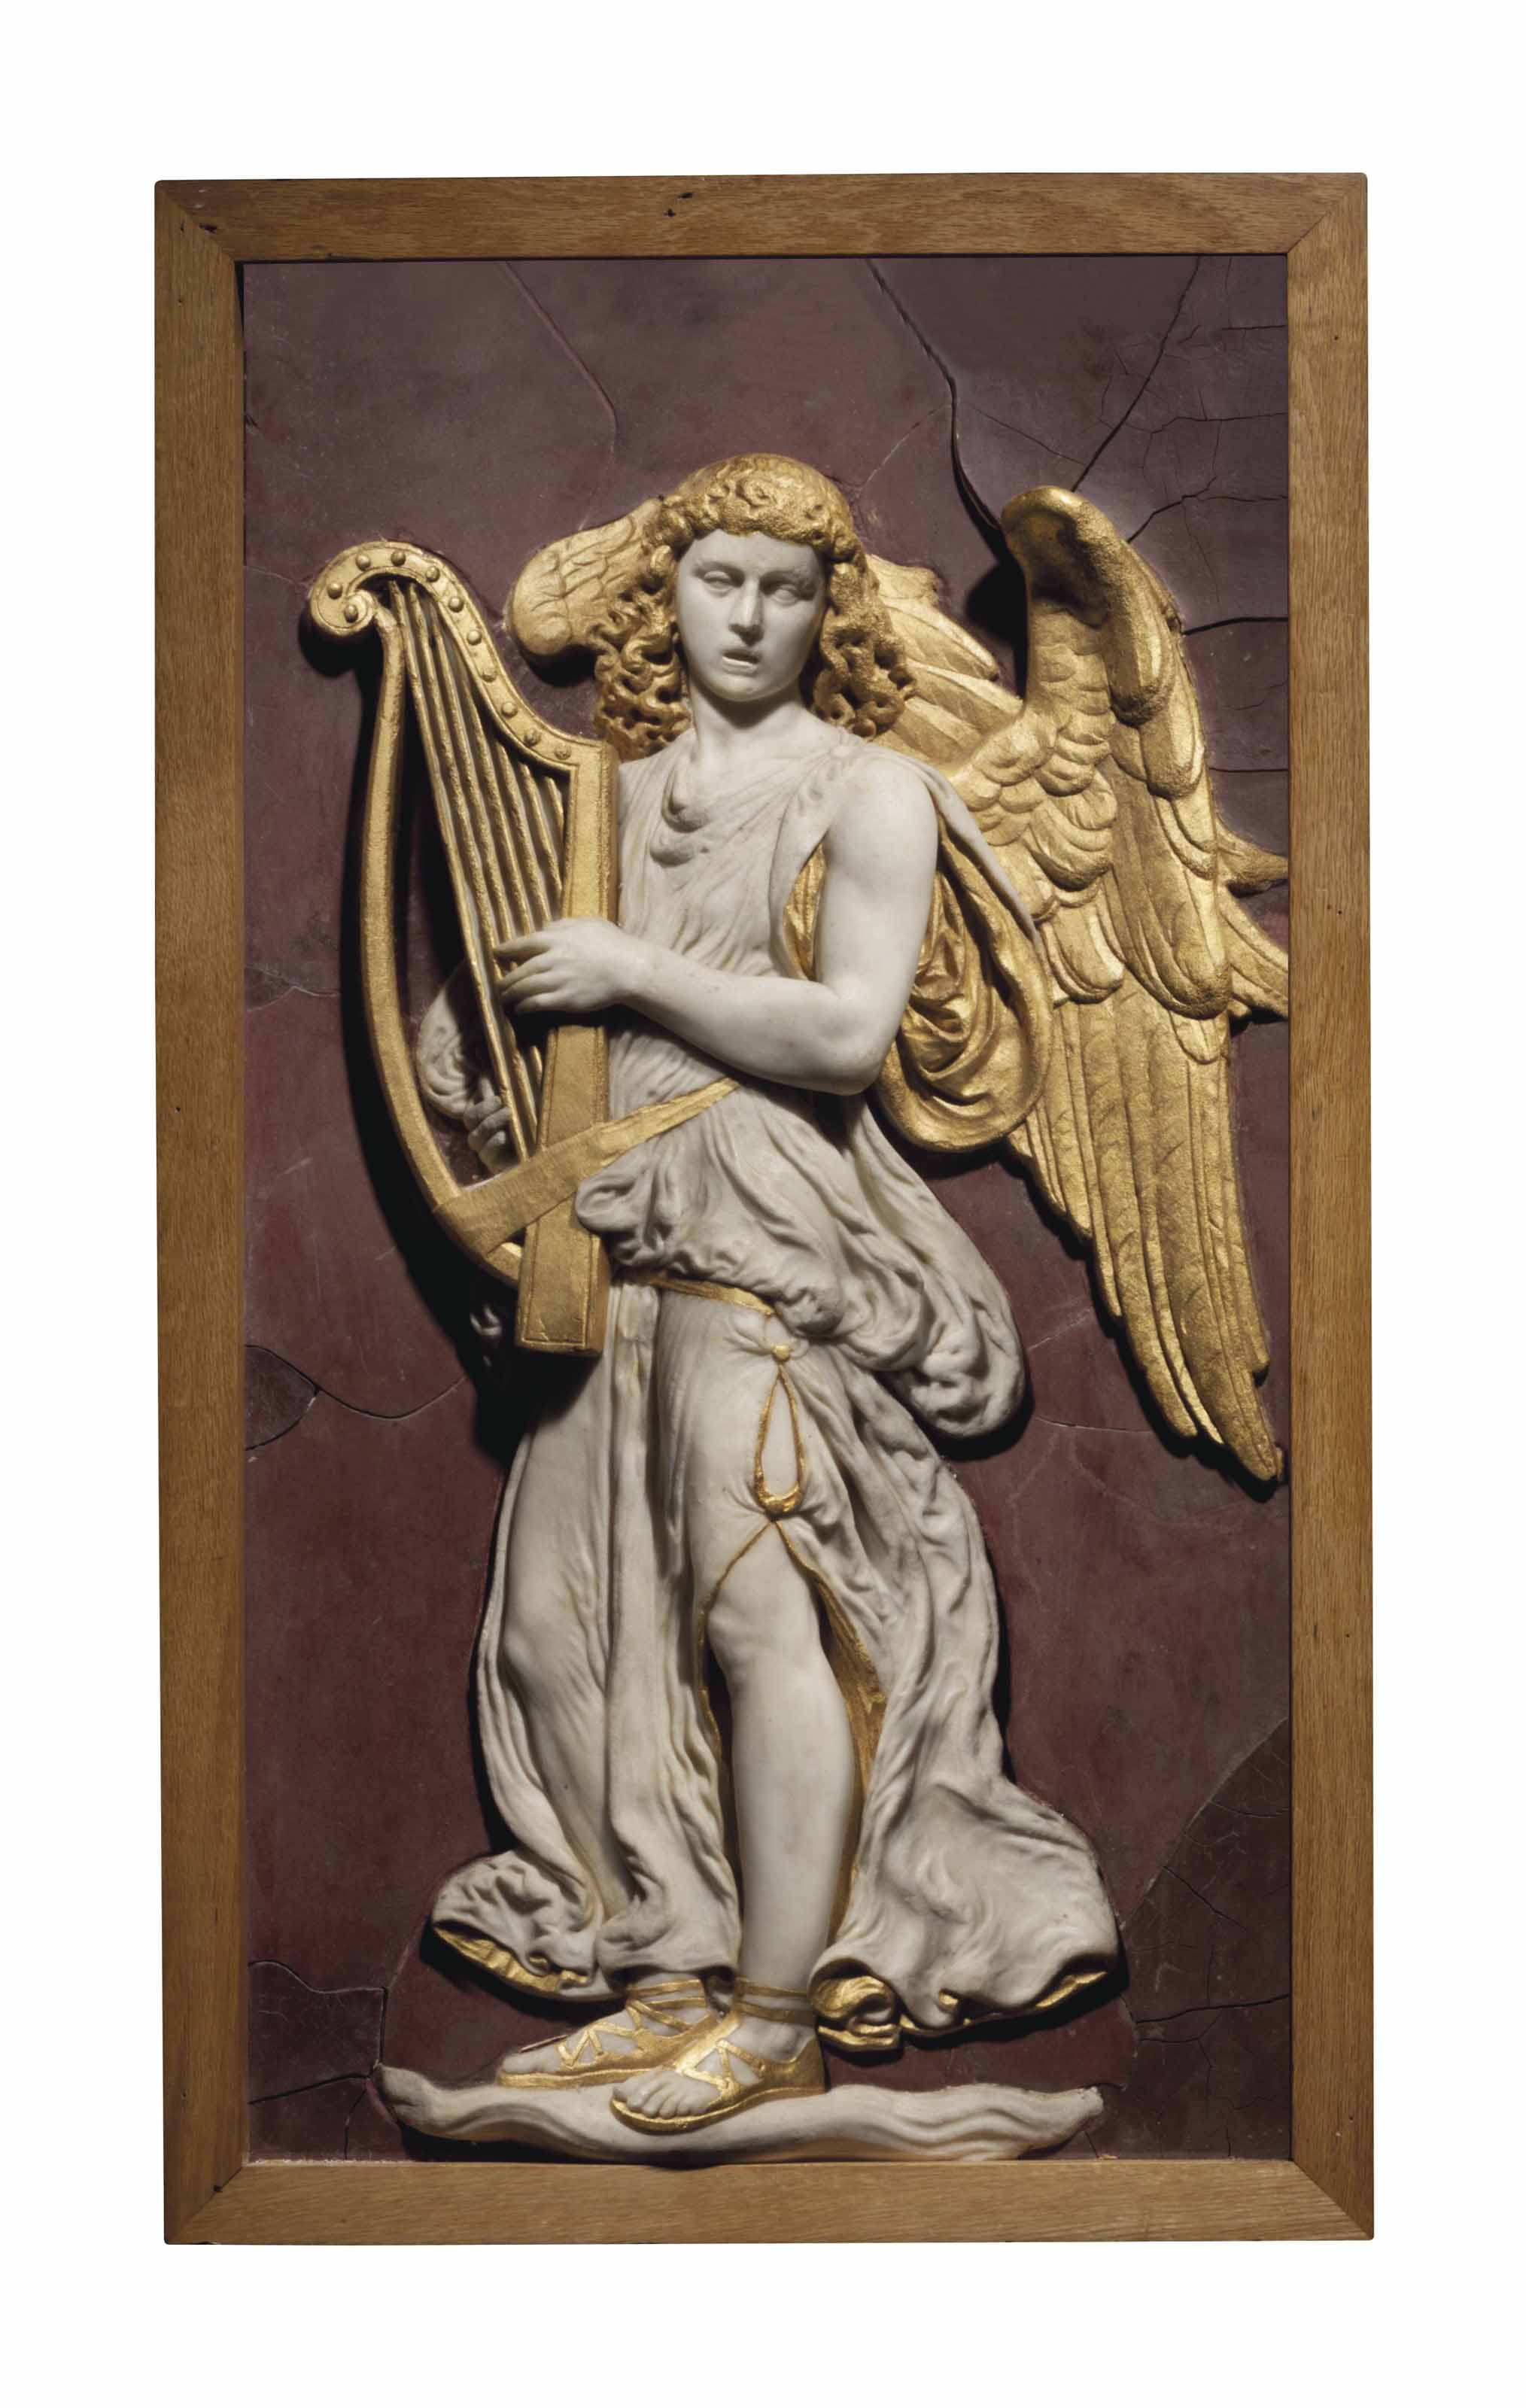 A PARCEL-GILT MARBLE RELIEF PANEL OF AN ANGEL WITH HARP